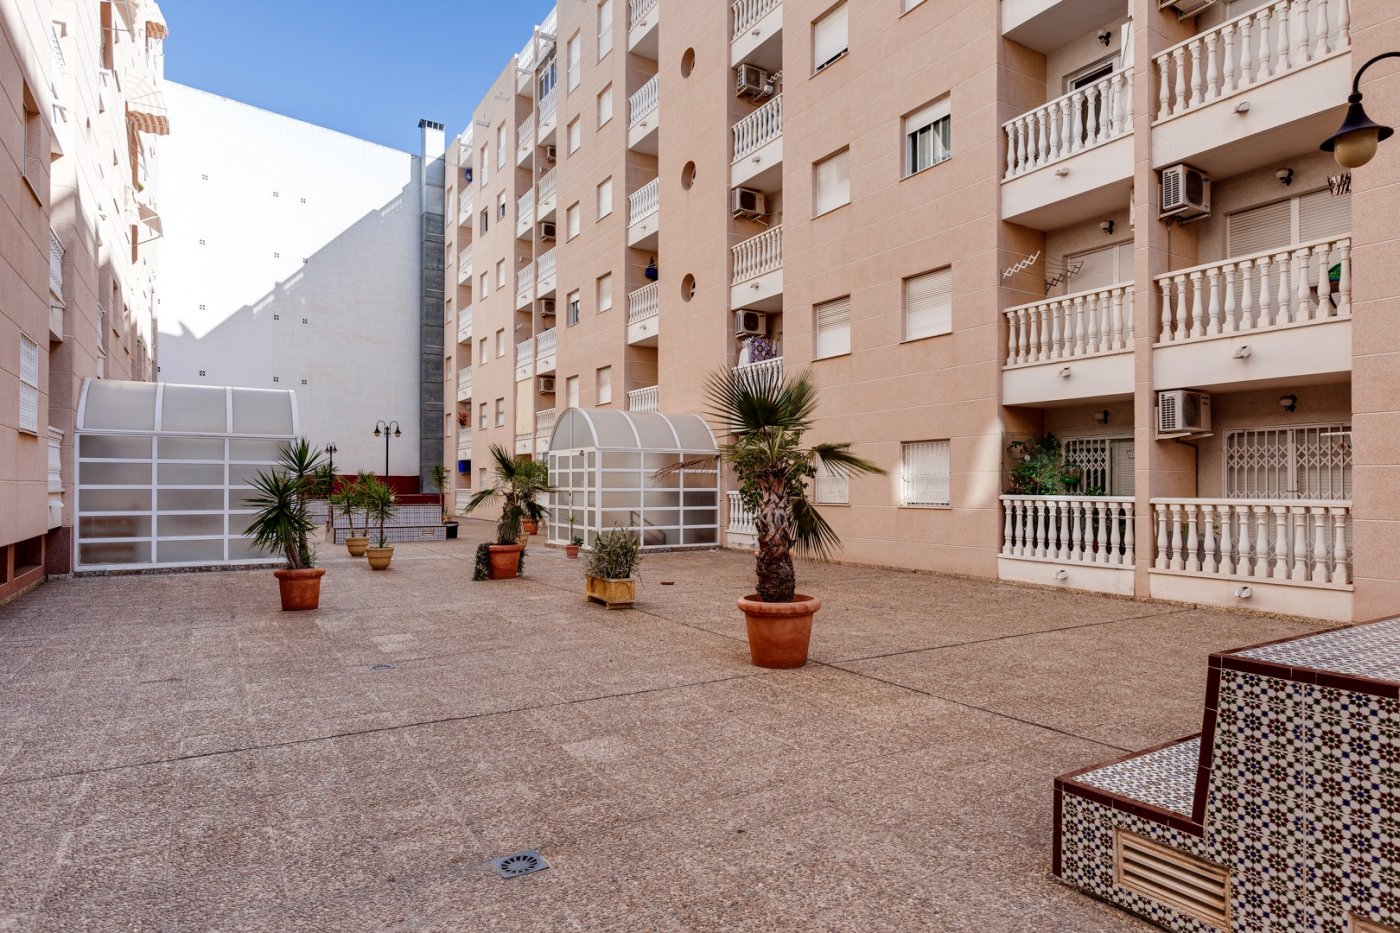 2 BEDROOM APARTMENT + SOUTH FACING TERRACE, CITY CENTER, TORREVIEJA